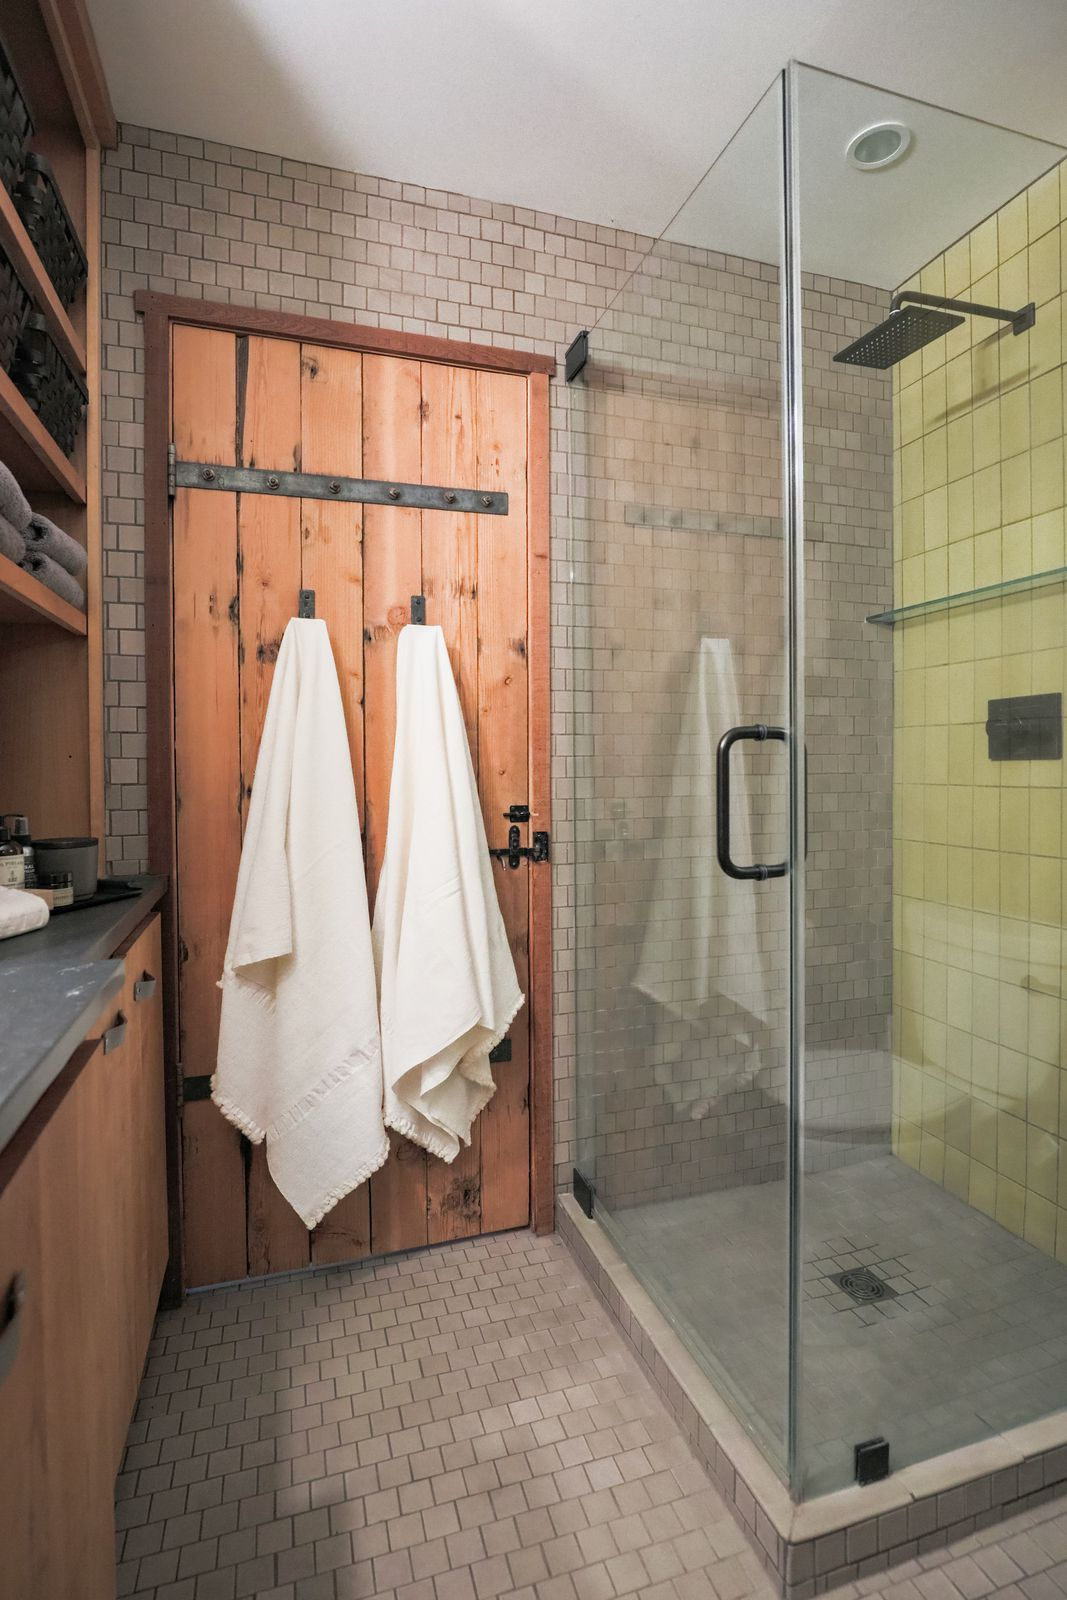 Glass shower door and shower covered in lime-green tile.